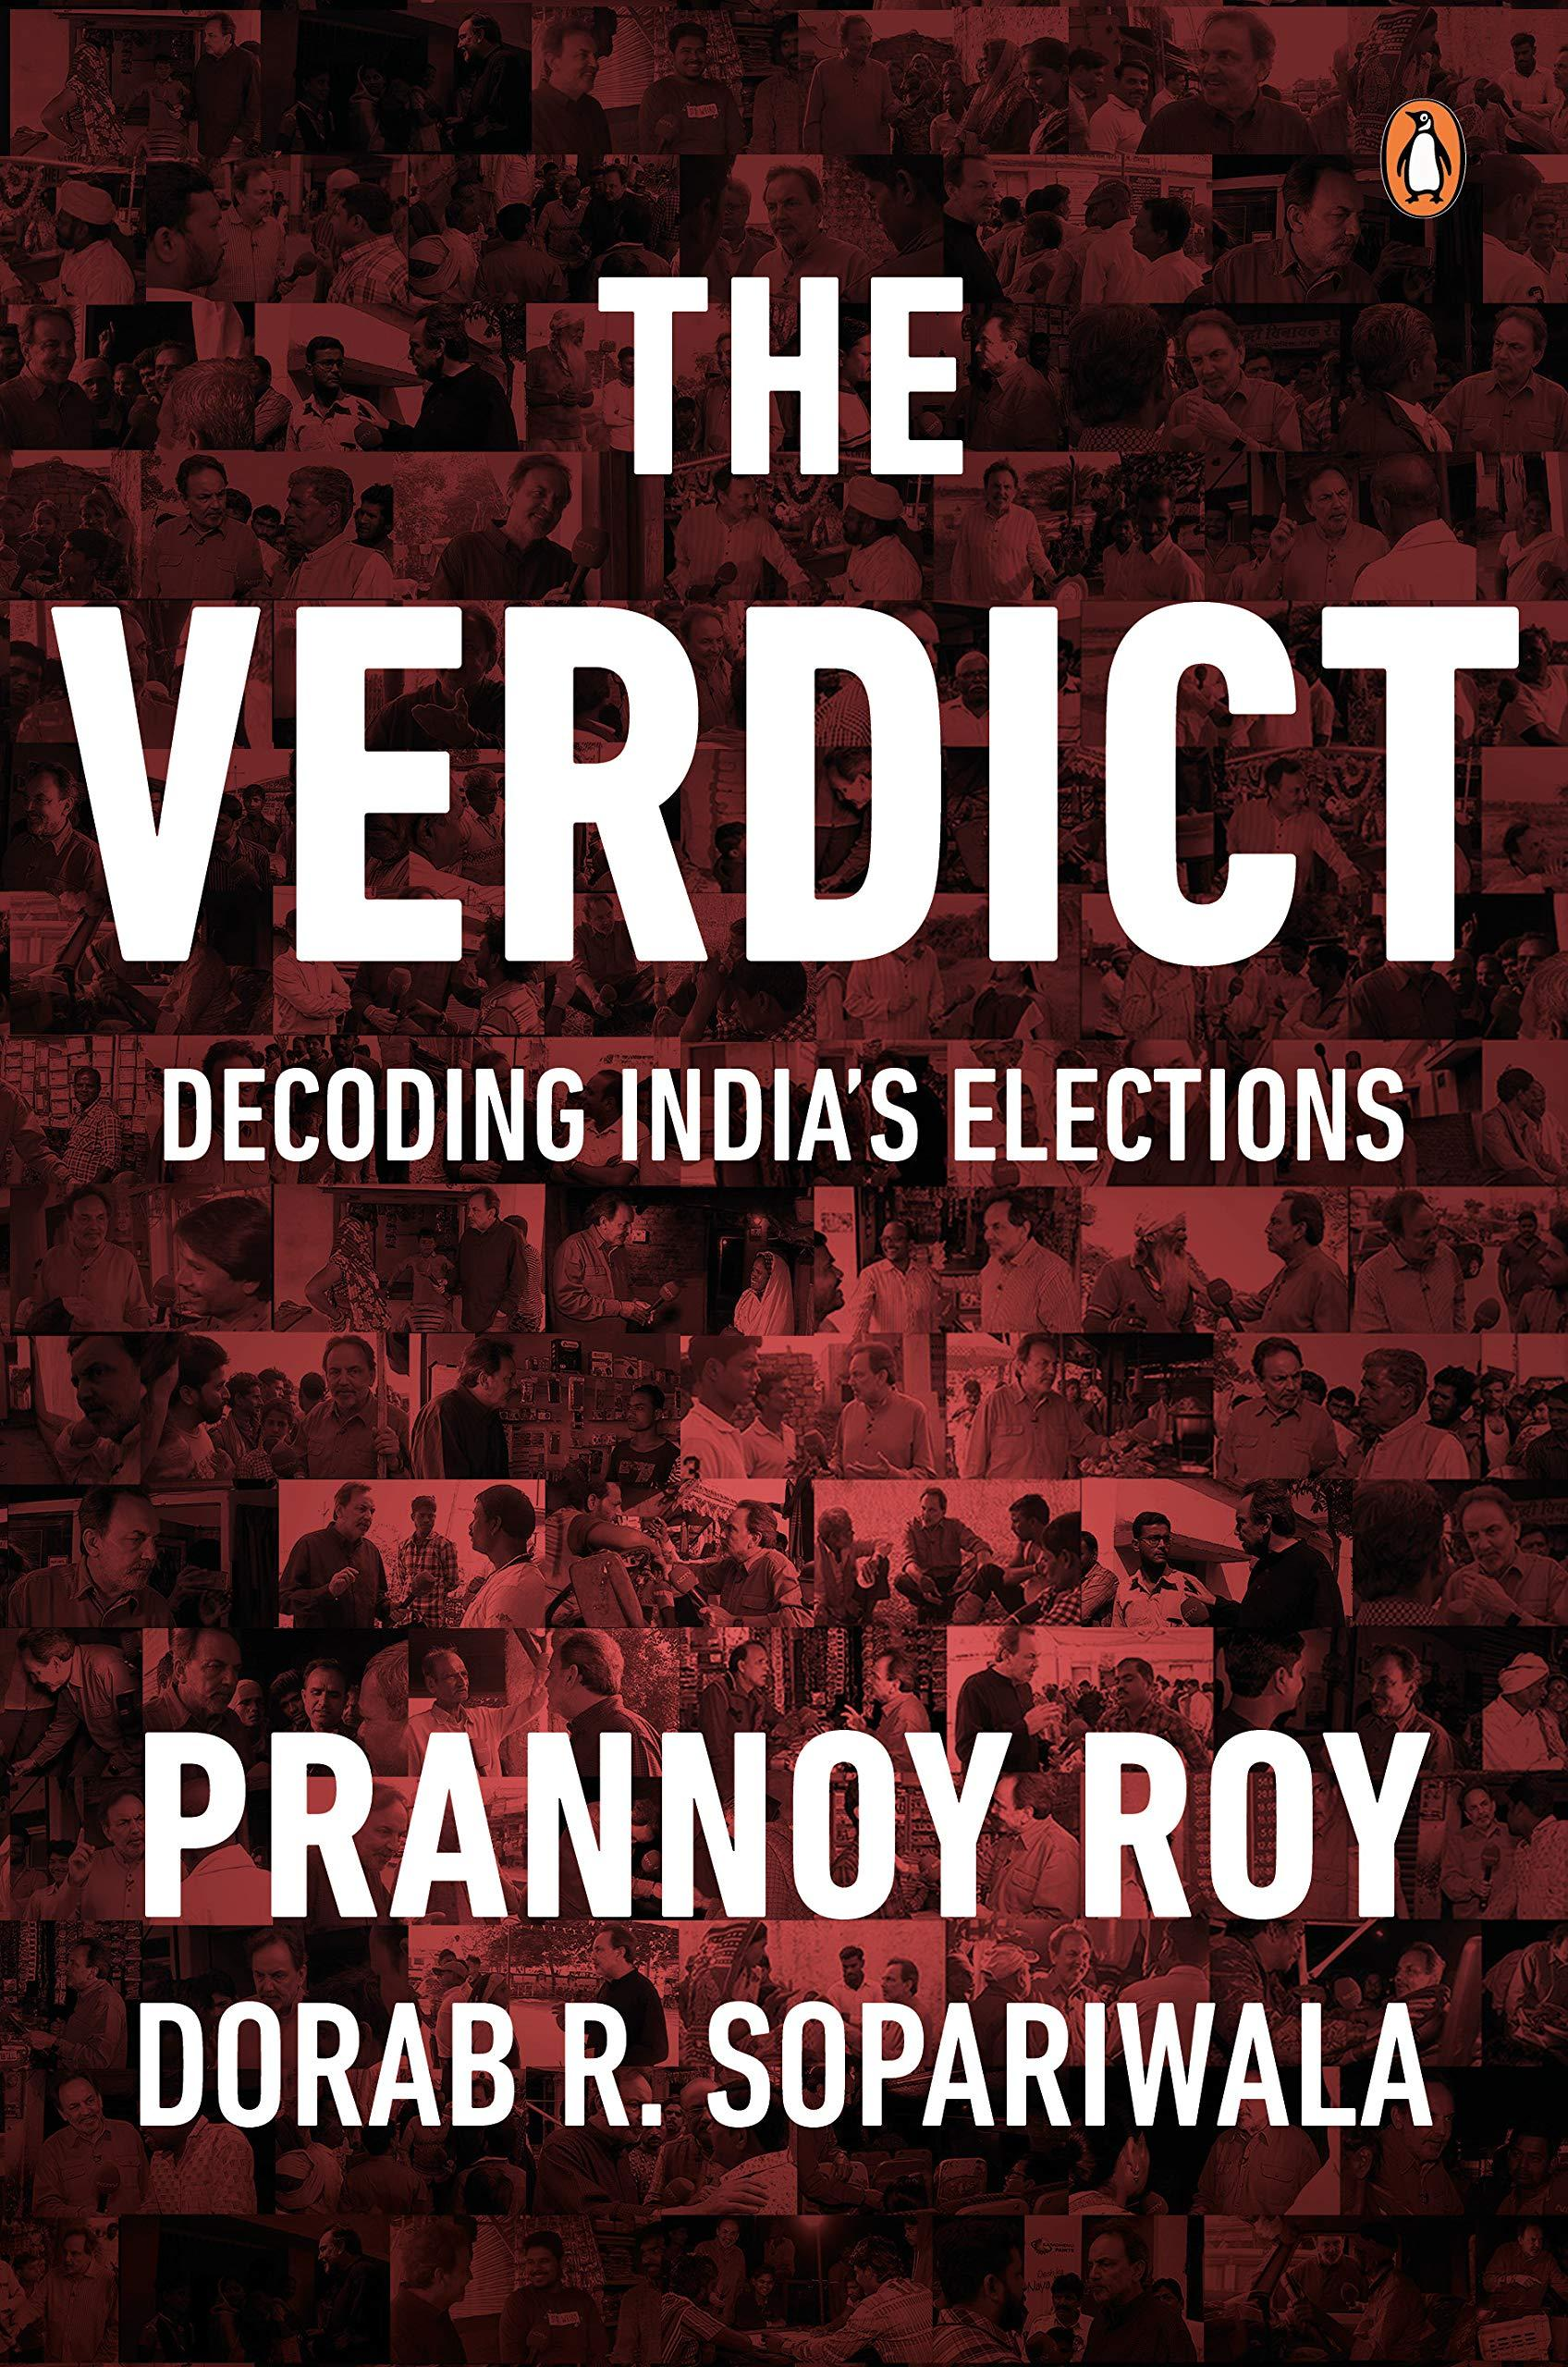 The Verdict: Decoding Indias Elections by Prannoy Roy and Dorab R. Sopariwala